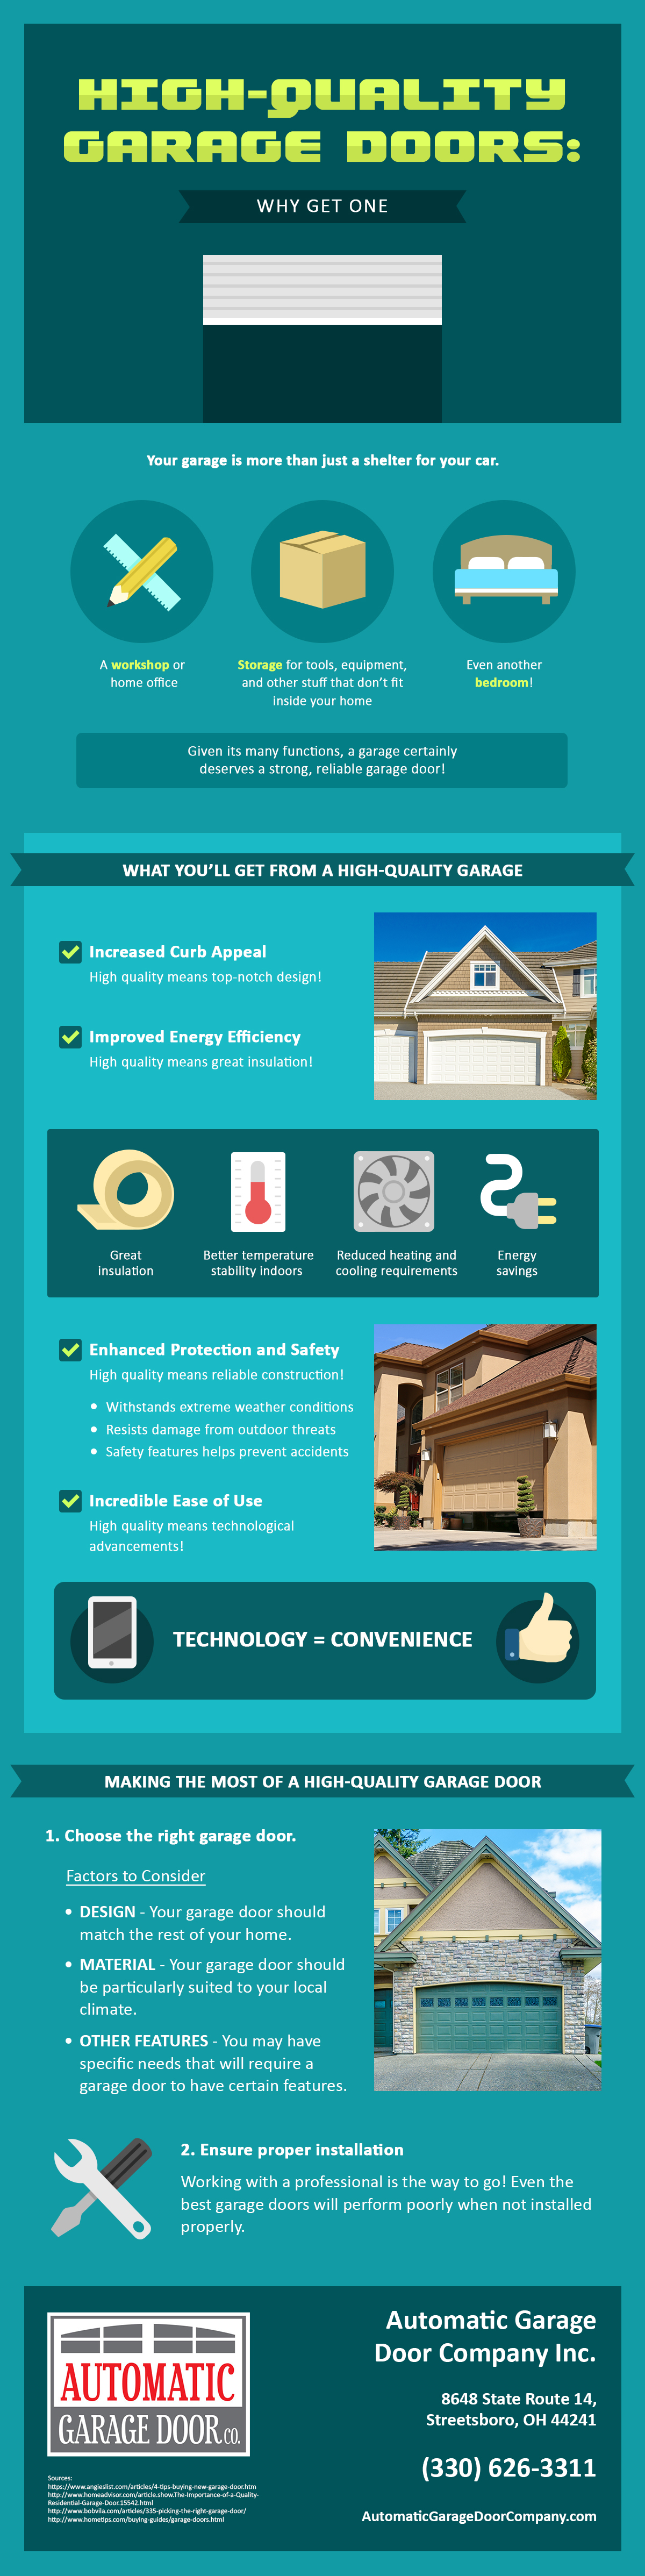 The Importance of High-Quality Garage Doors